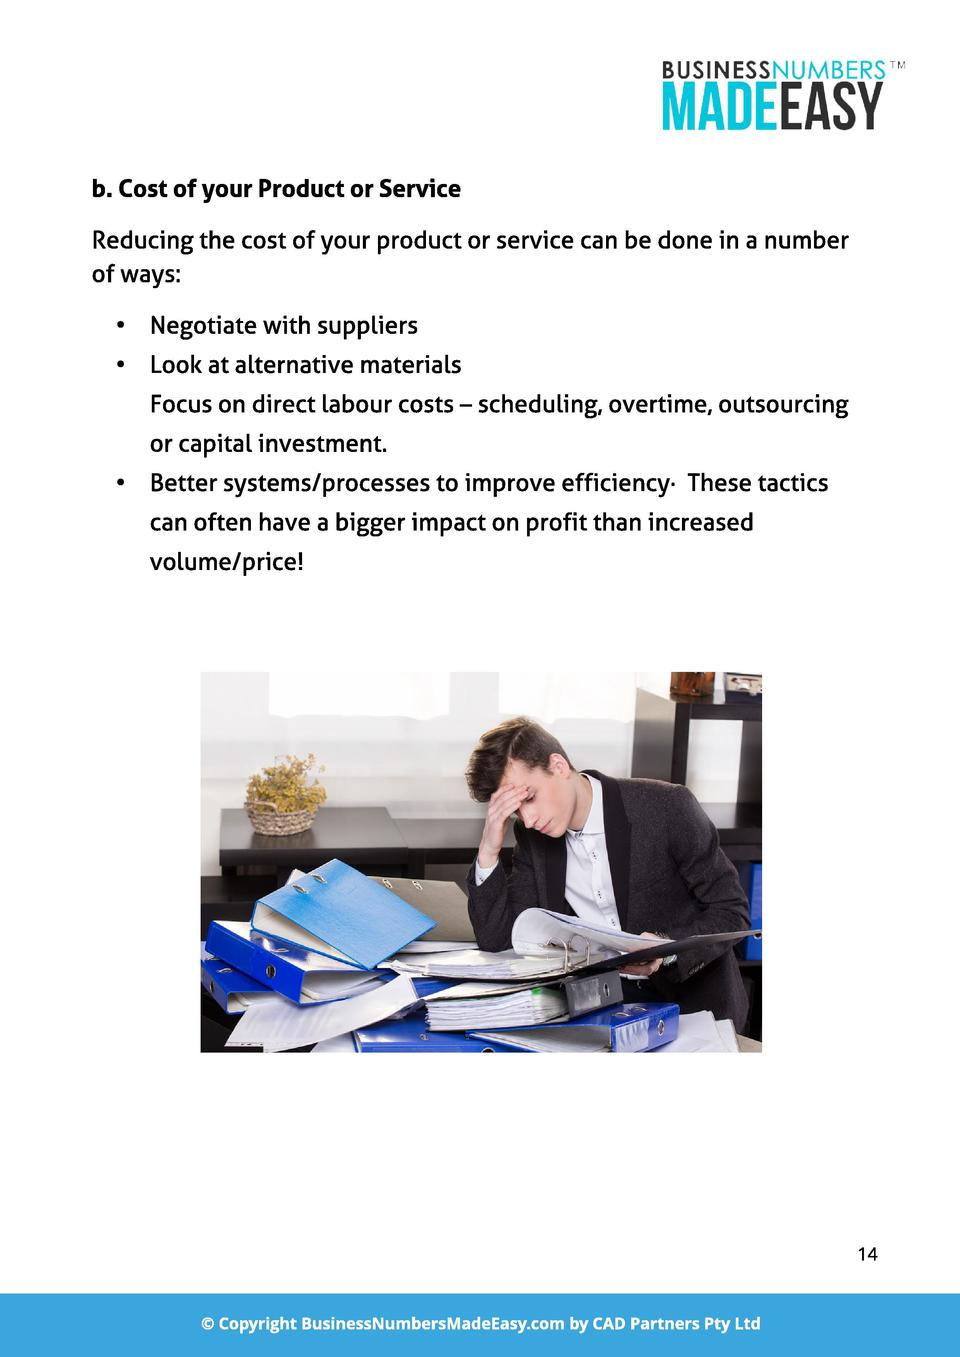 b. Cost of your Product or Service Reducing the cost of your product or service can be done in a number of ways  -  Negoti...